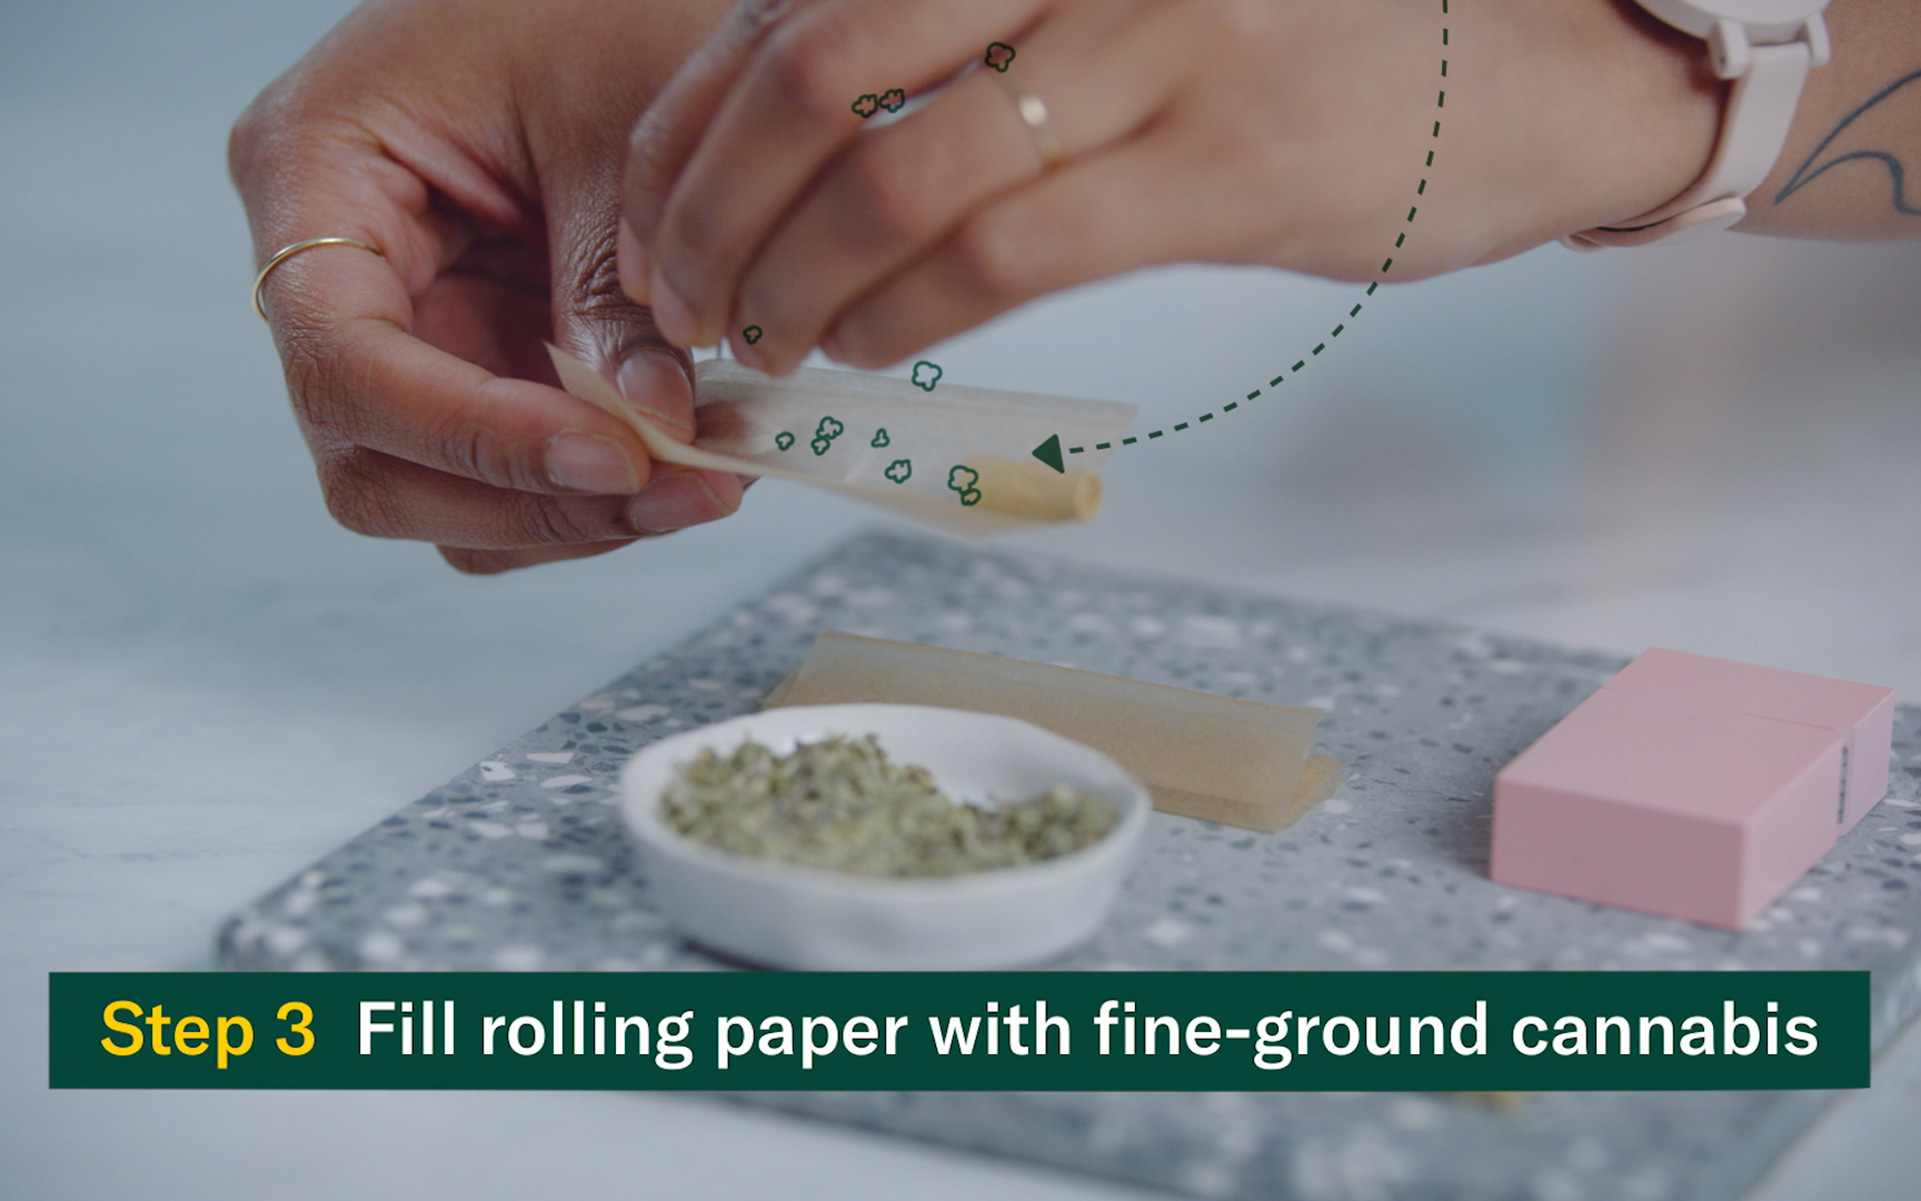 Rolling a small joint